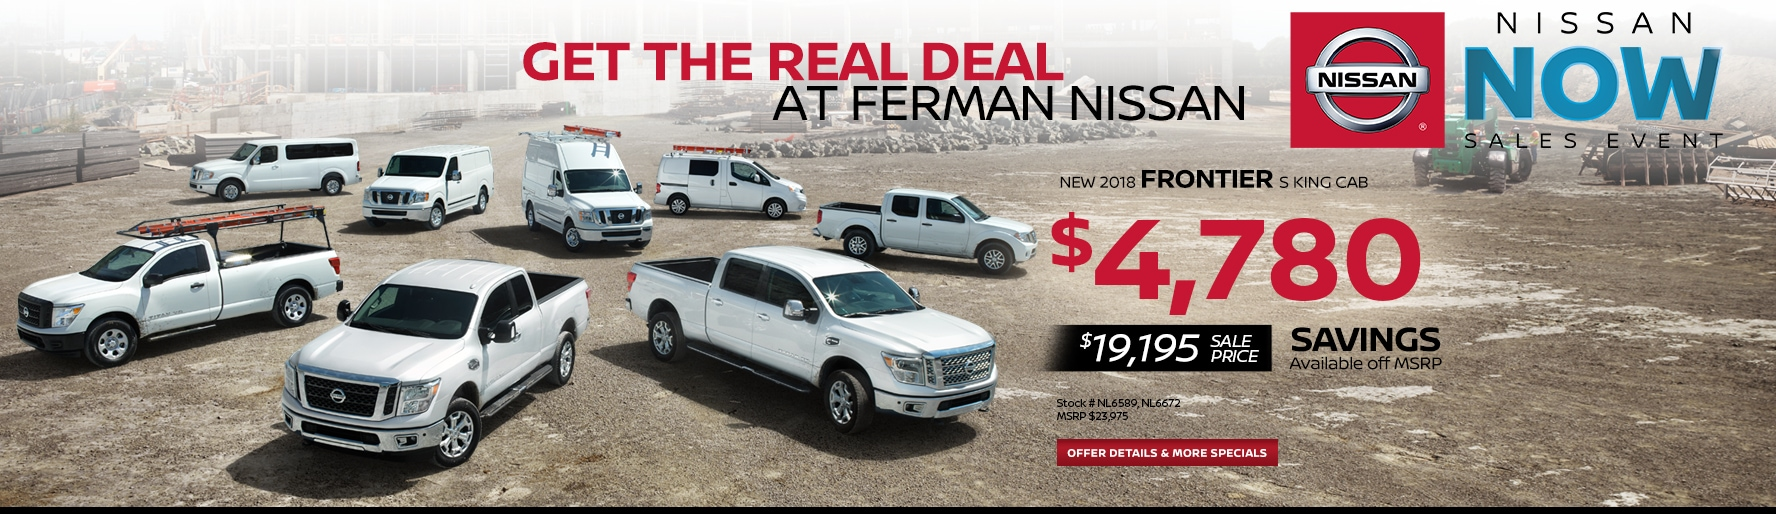 Nissan Dealership In Tampa New Amp Used Nissans For Sale